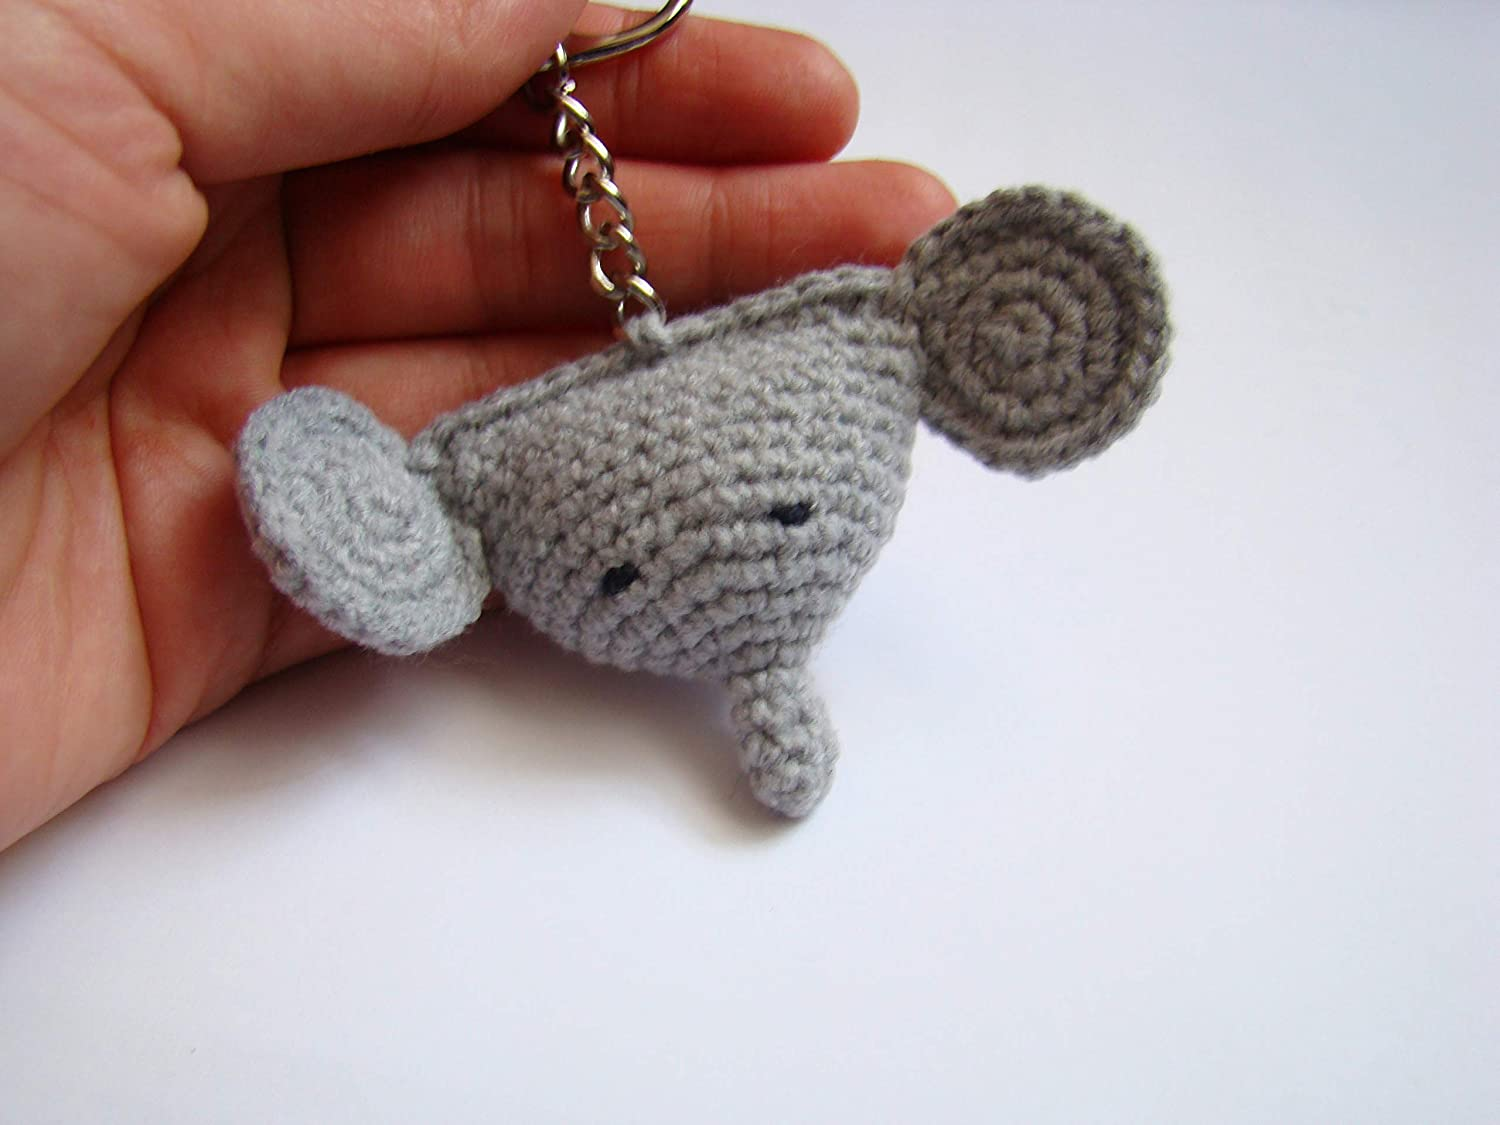 Crochet an adorable Amigurumi Elephant Keychain with this free ... | 1125x1500